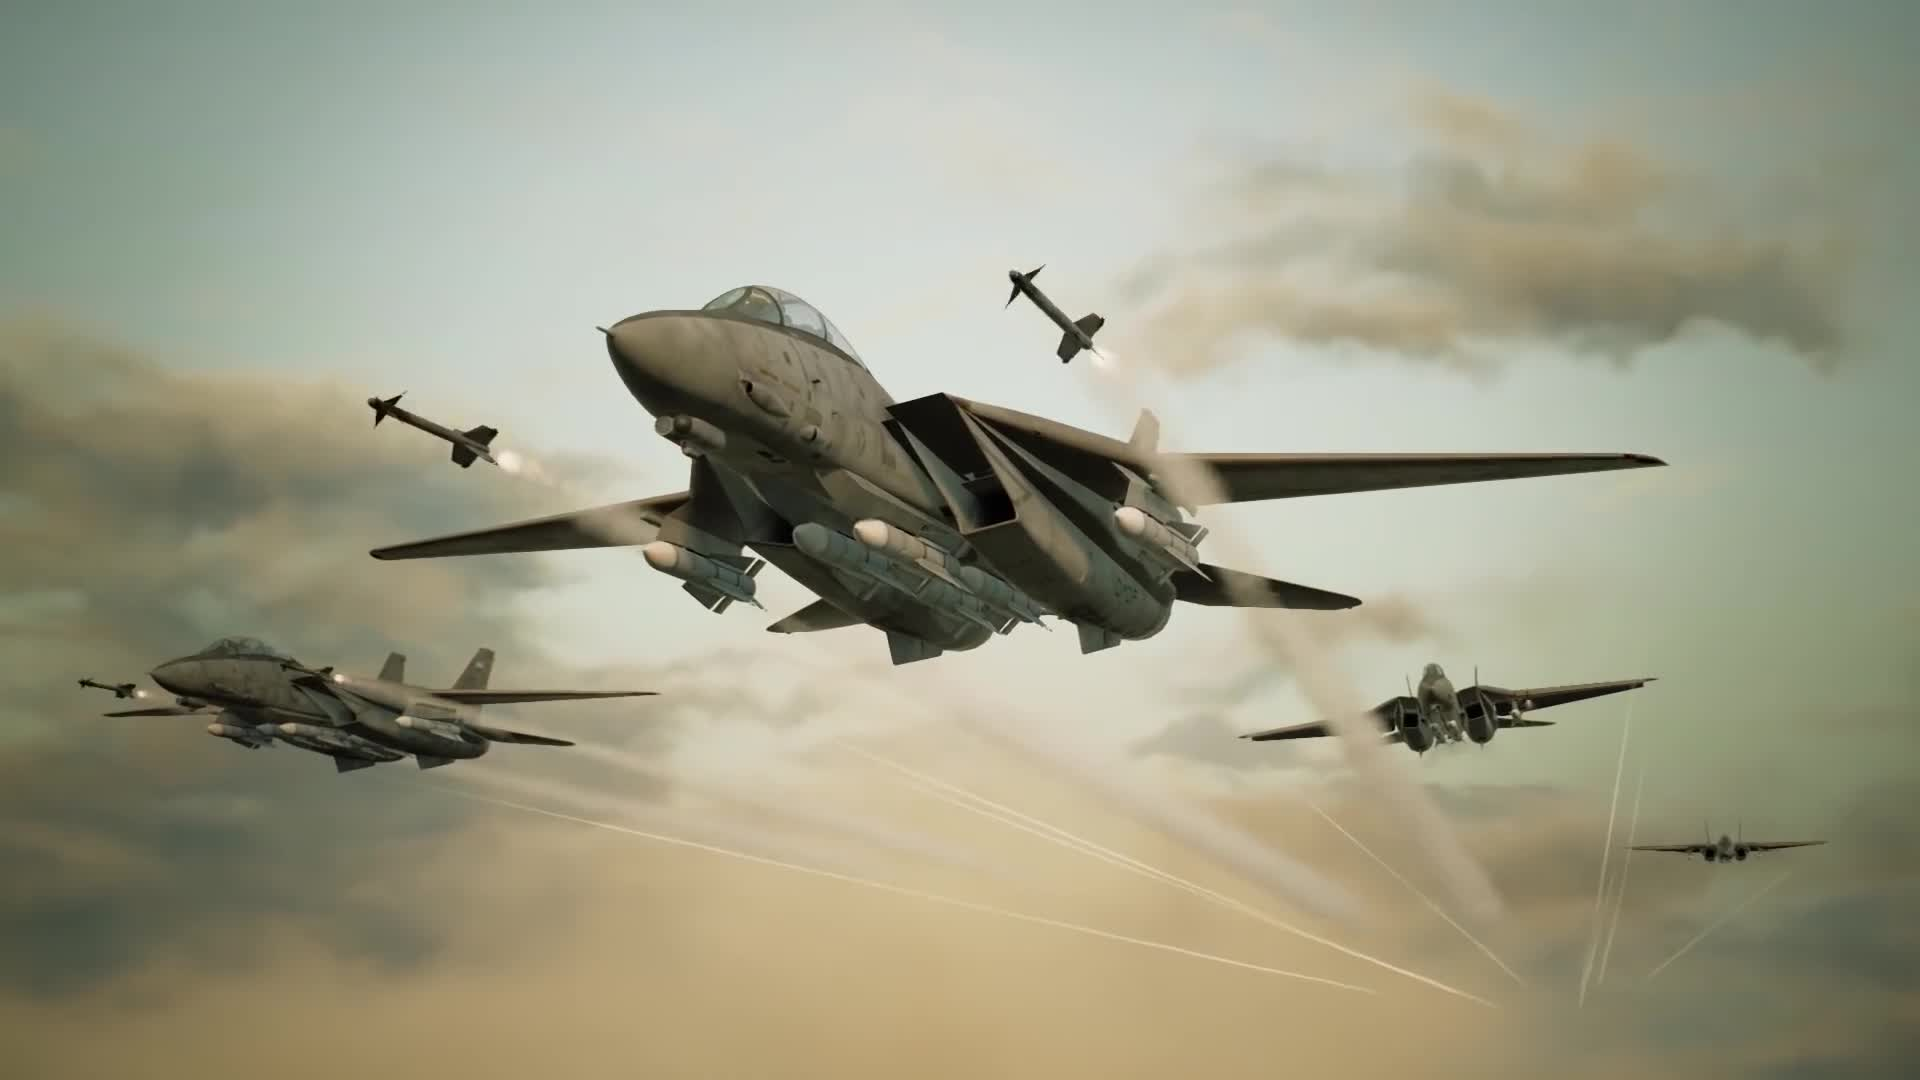 Ace Combat 7 Skies Unknown Gifs Search | Search & Share on